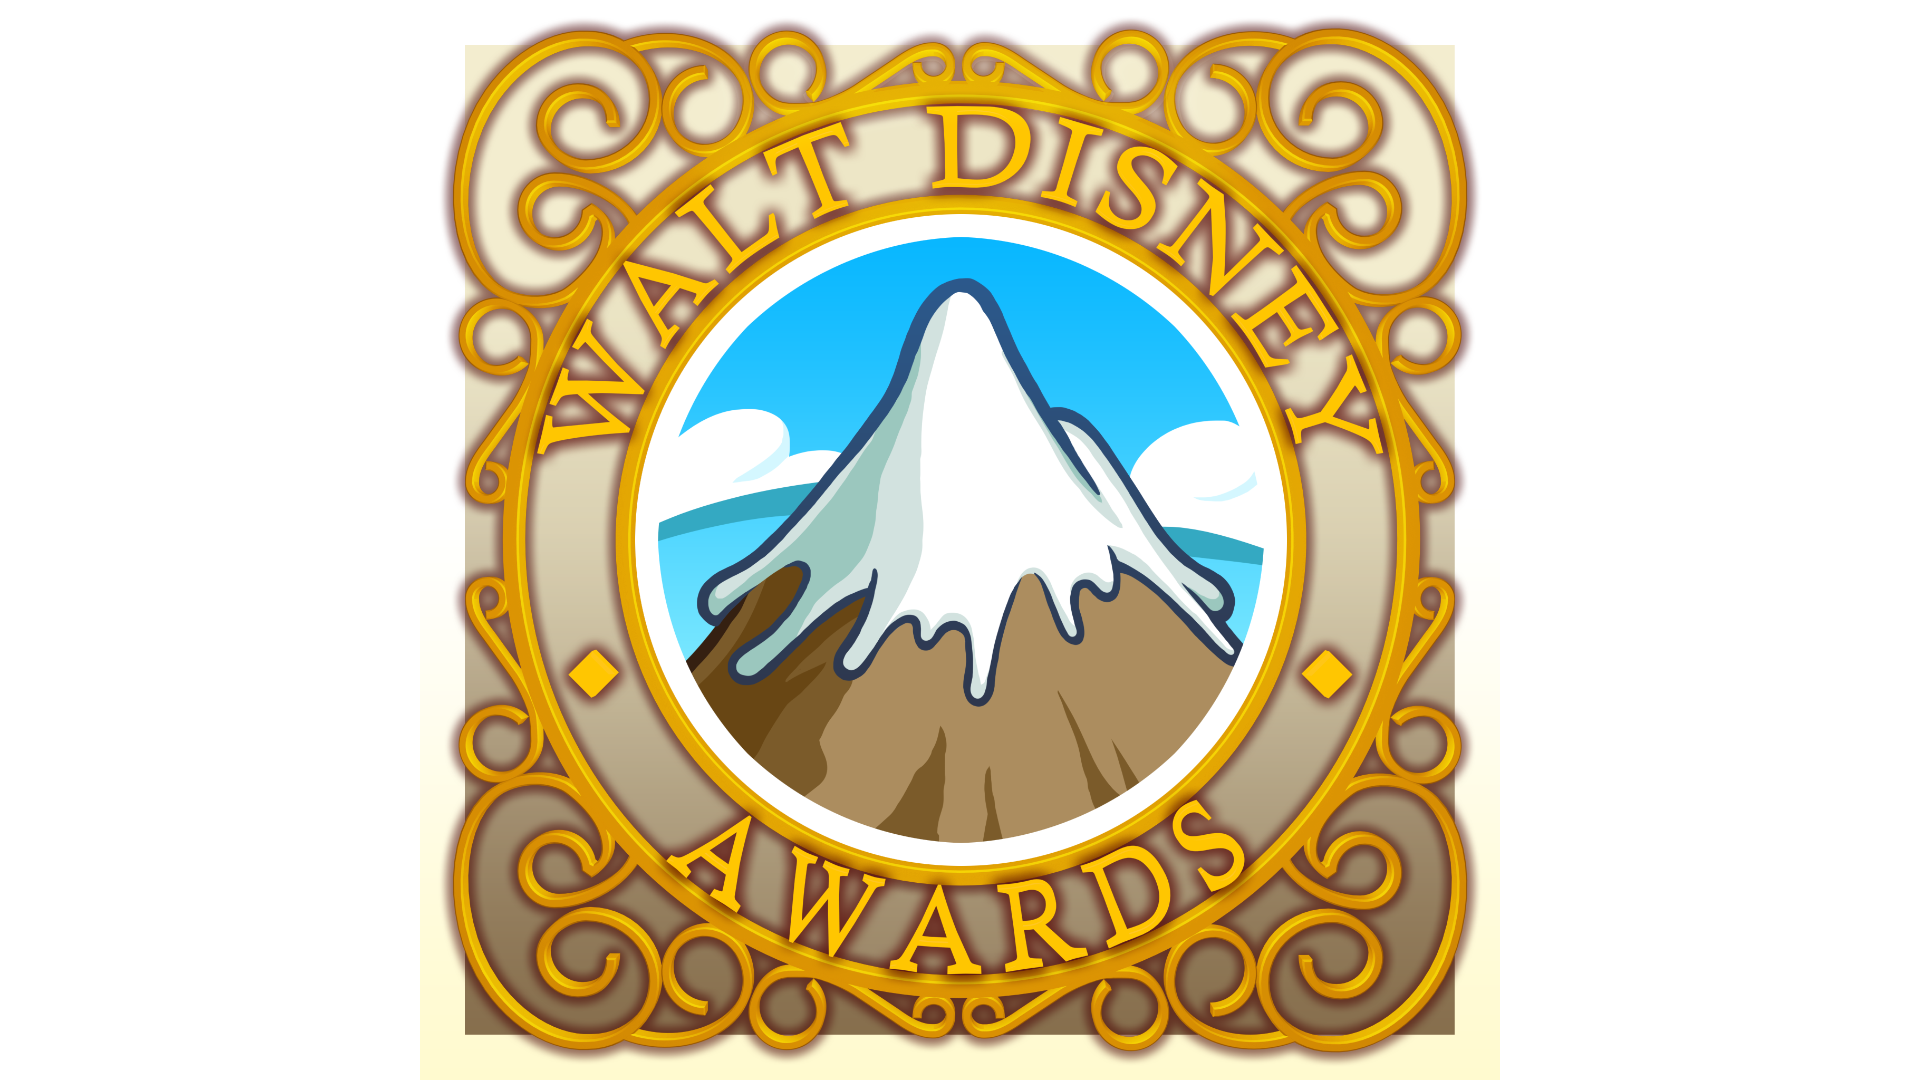 Disneyland Mountaineer